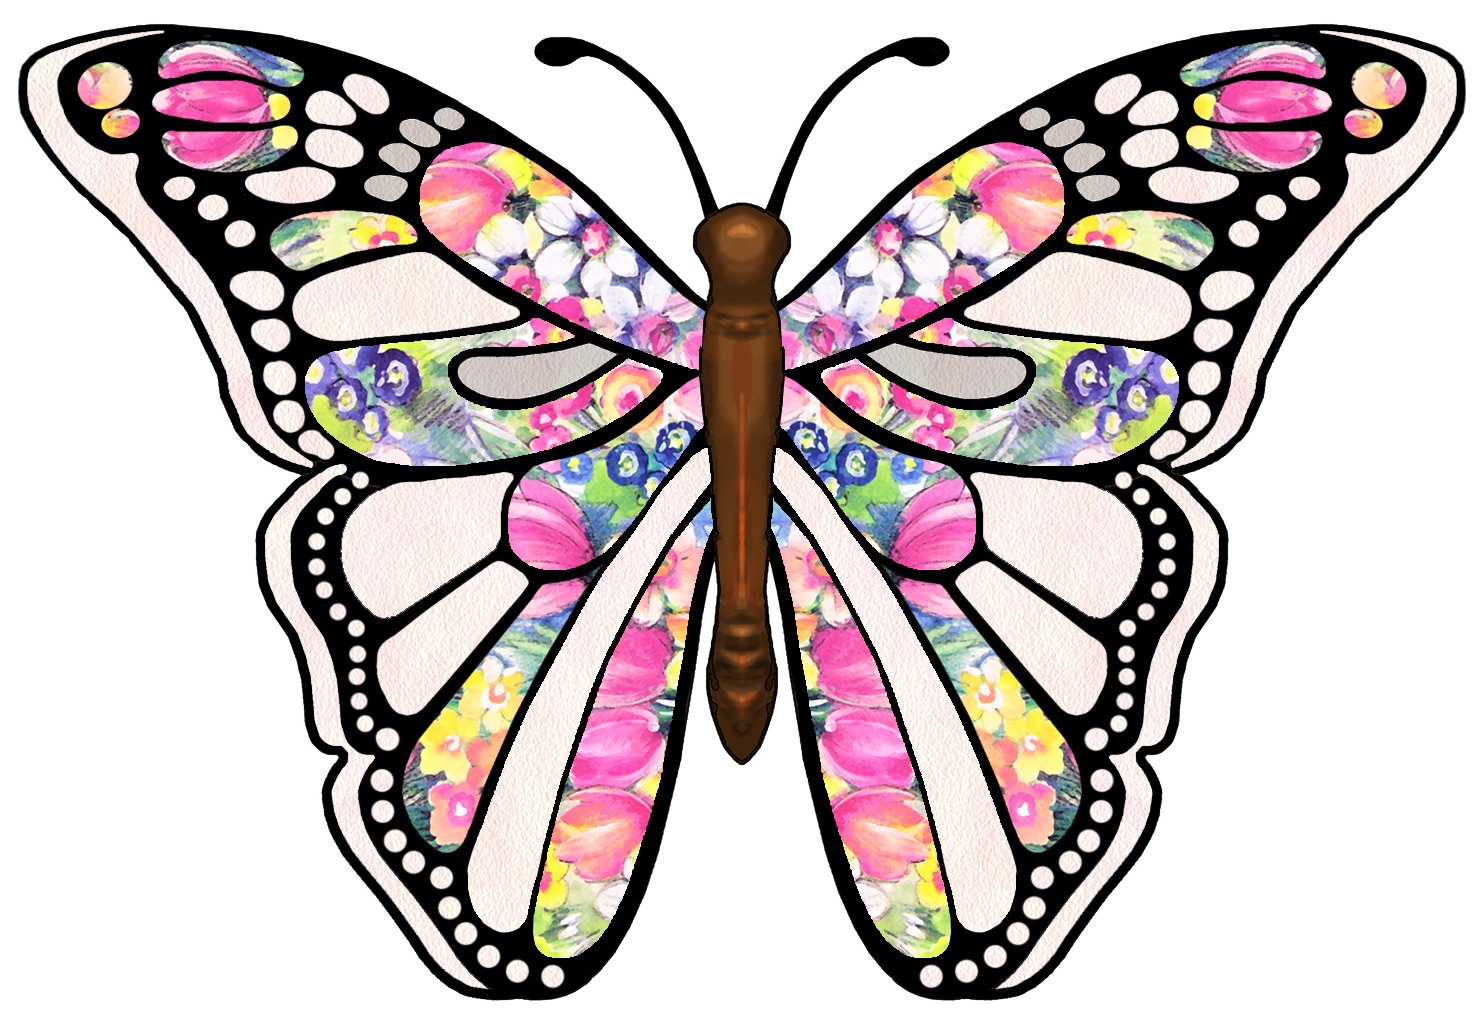 Free Pictures Of Butterflies | Free Download Best Free Pictures Of - Free Printable Butterfly Clipart